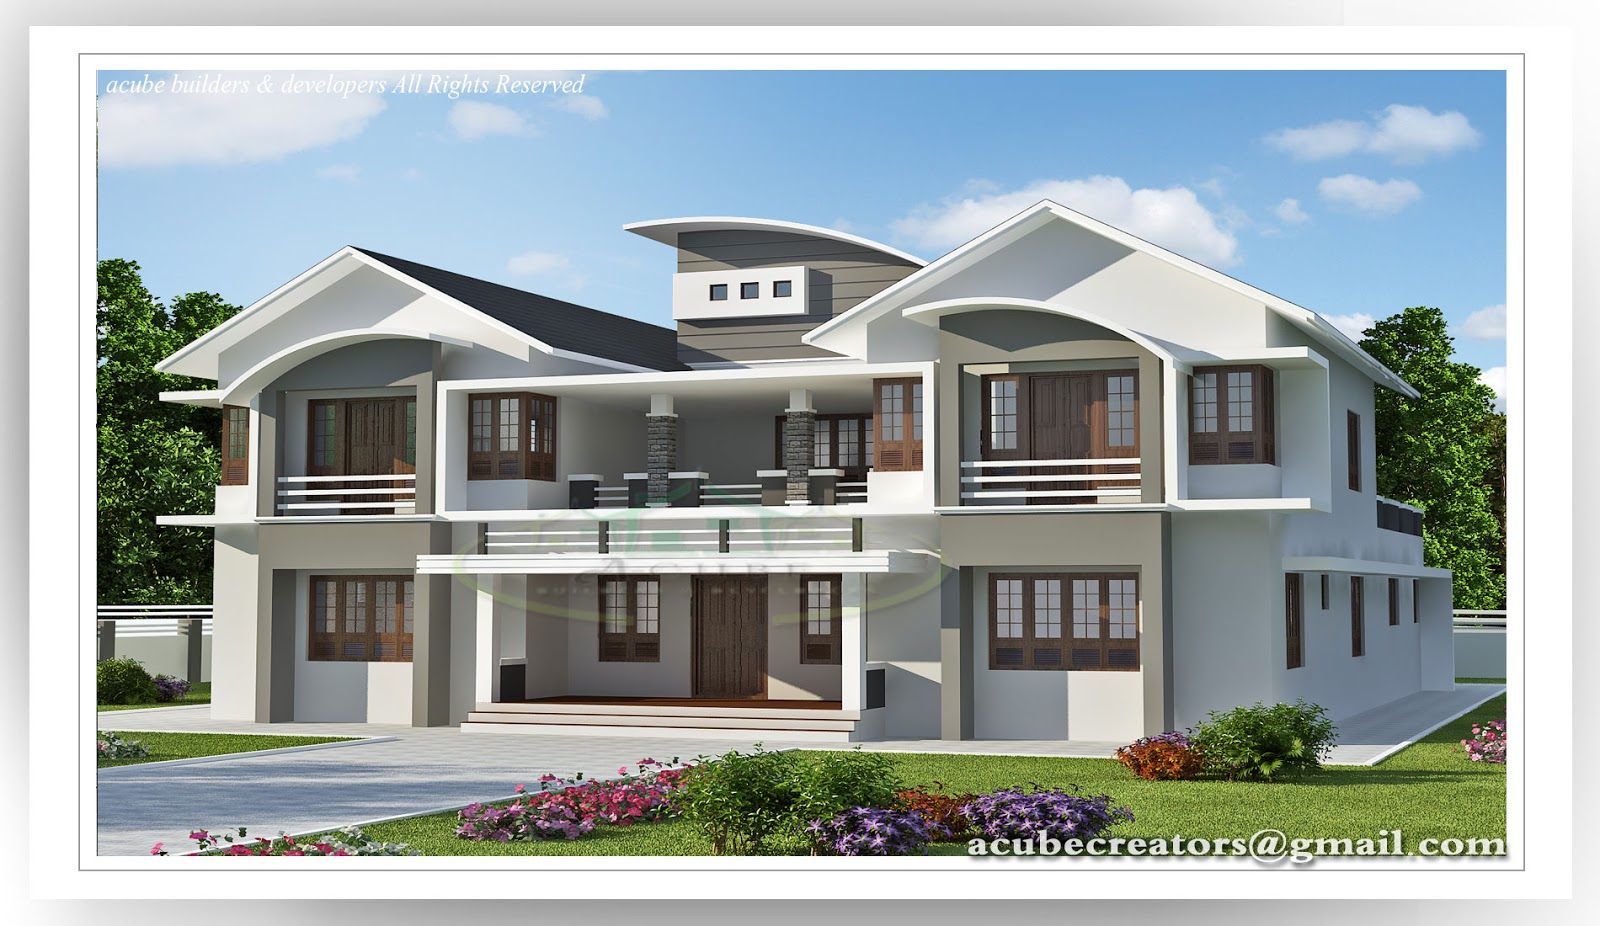 6 bedroom luxury villa design 5091 plan 149 for House plans with 6 bedrooms